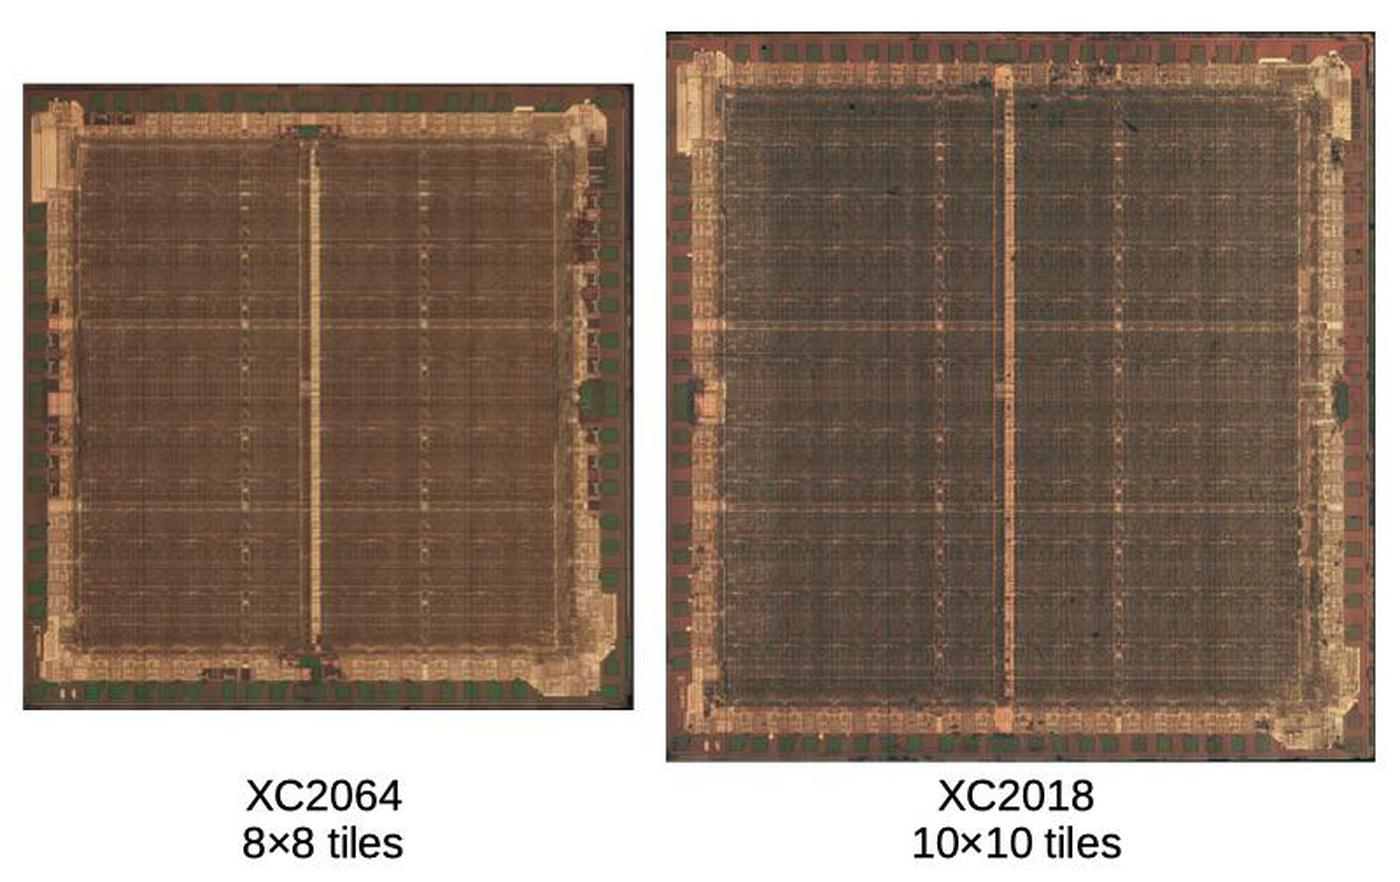 Comparison of the XC2064 and XC2018 dies. The images are scaled so the tile sizes match; I don't know how the physical sizes of the dies compare. Die photos from siliconpr0n.